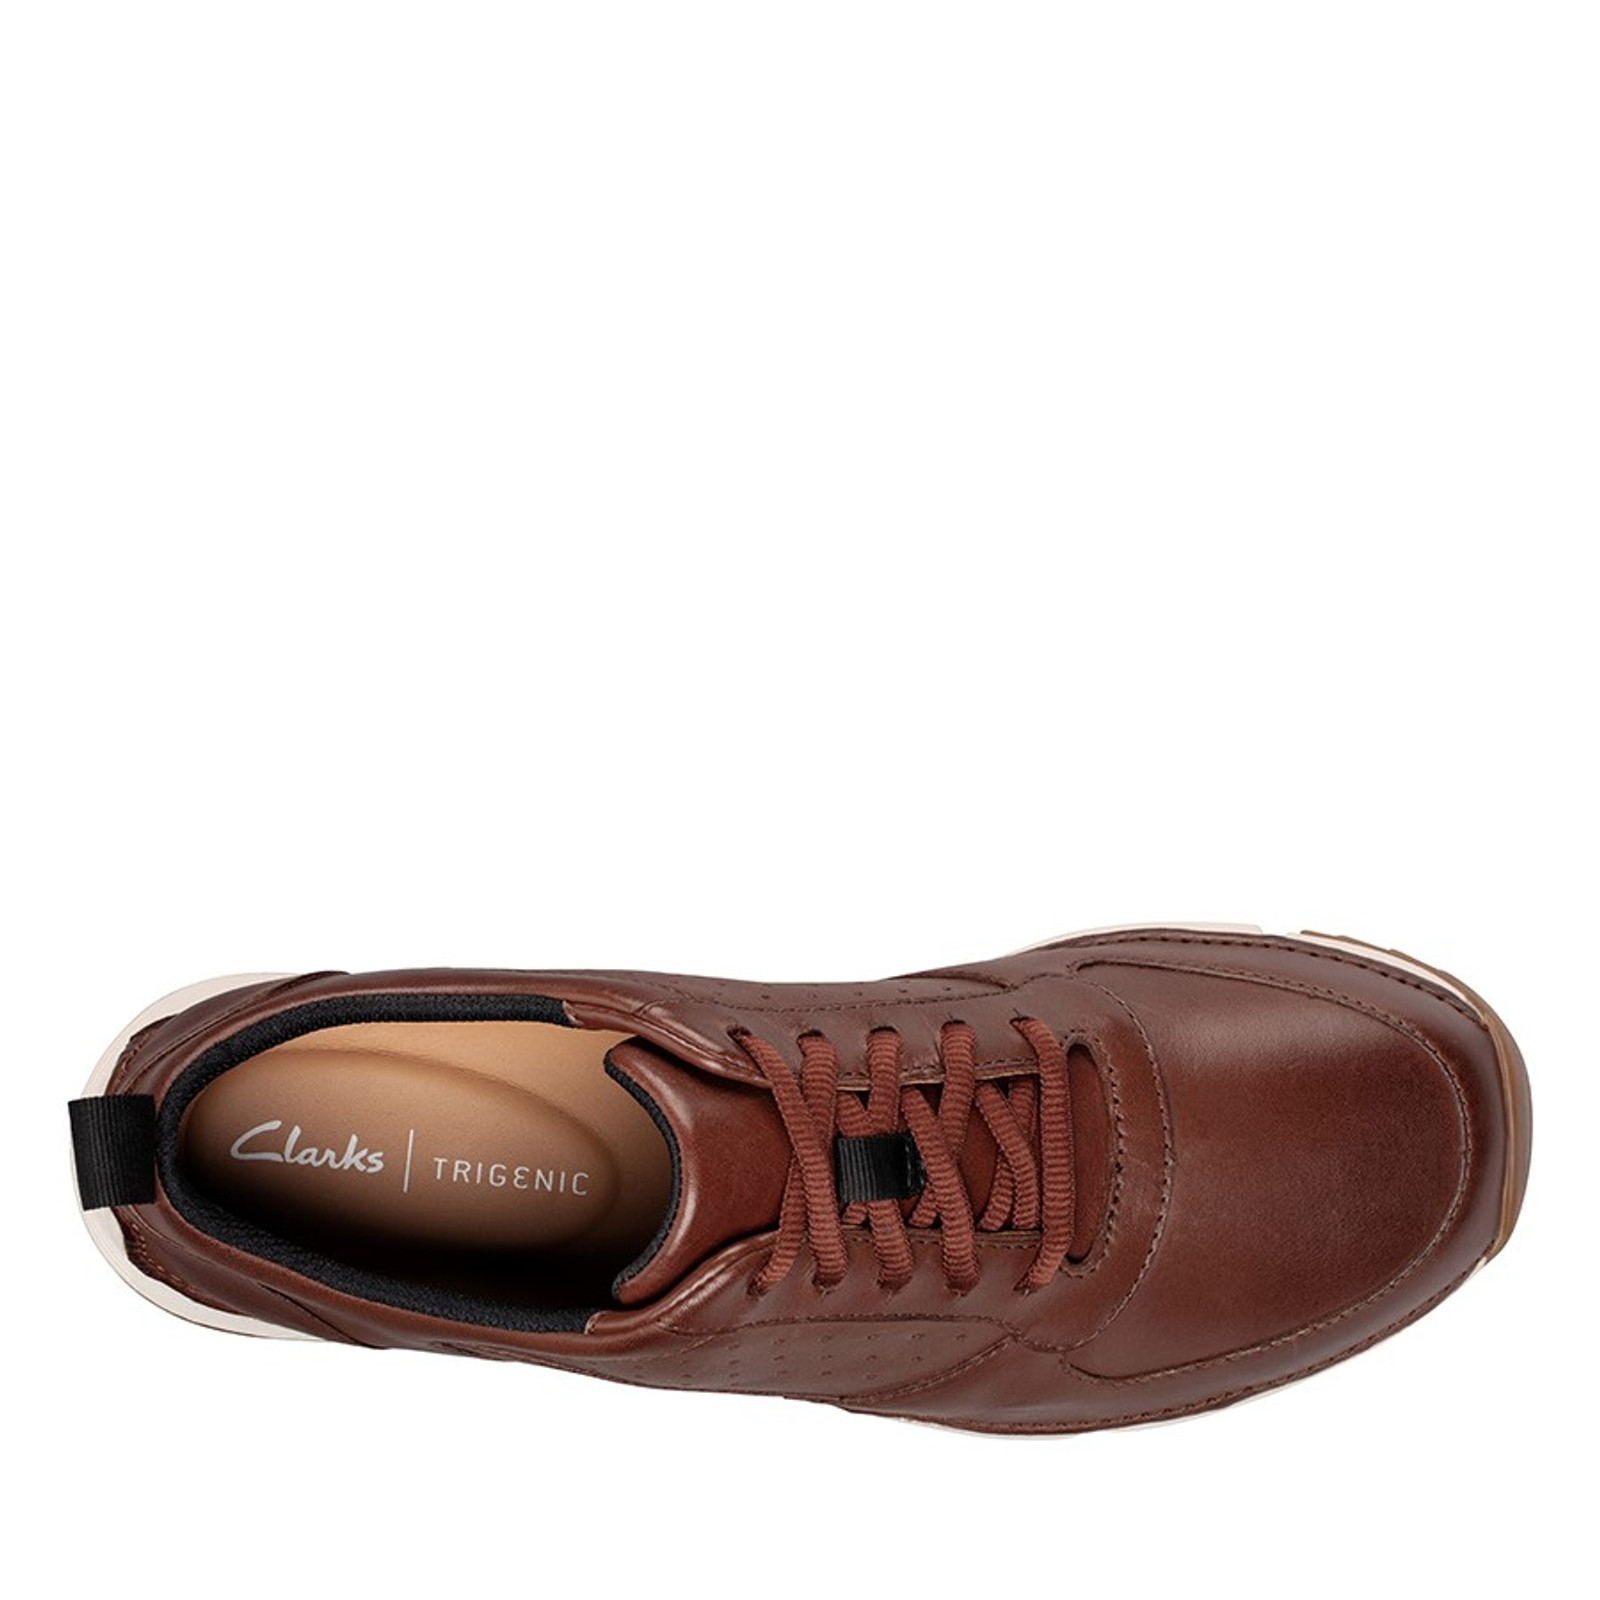 Clarks Mens TRI SPRINT British Tan Leather